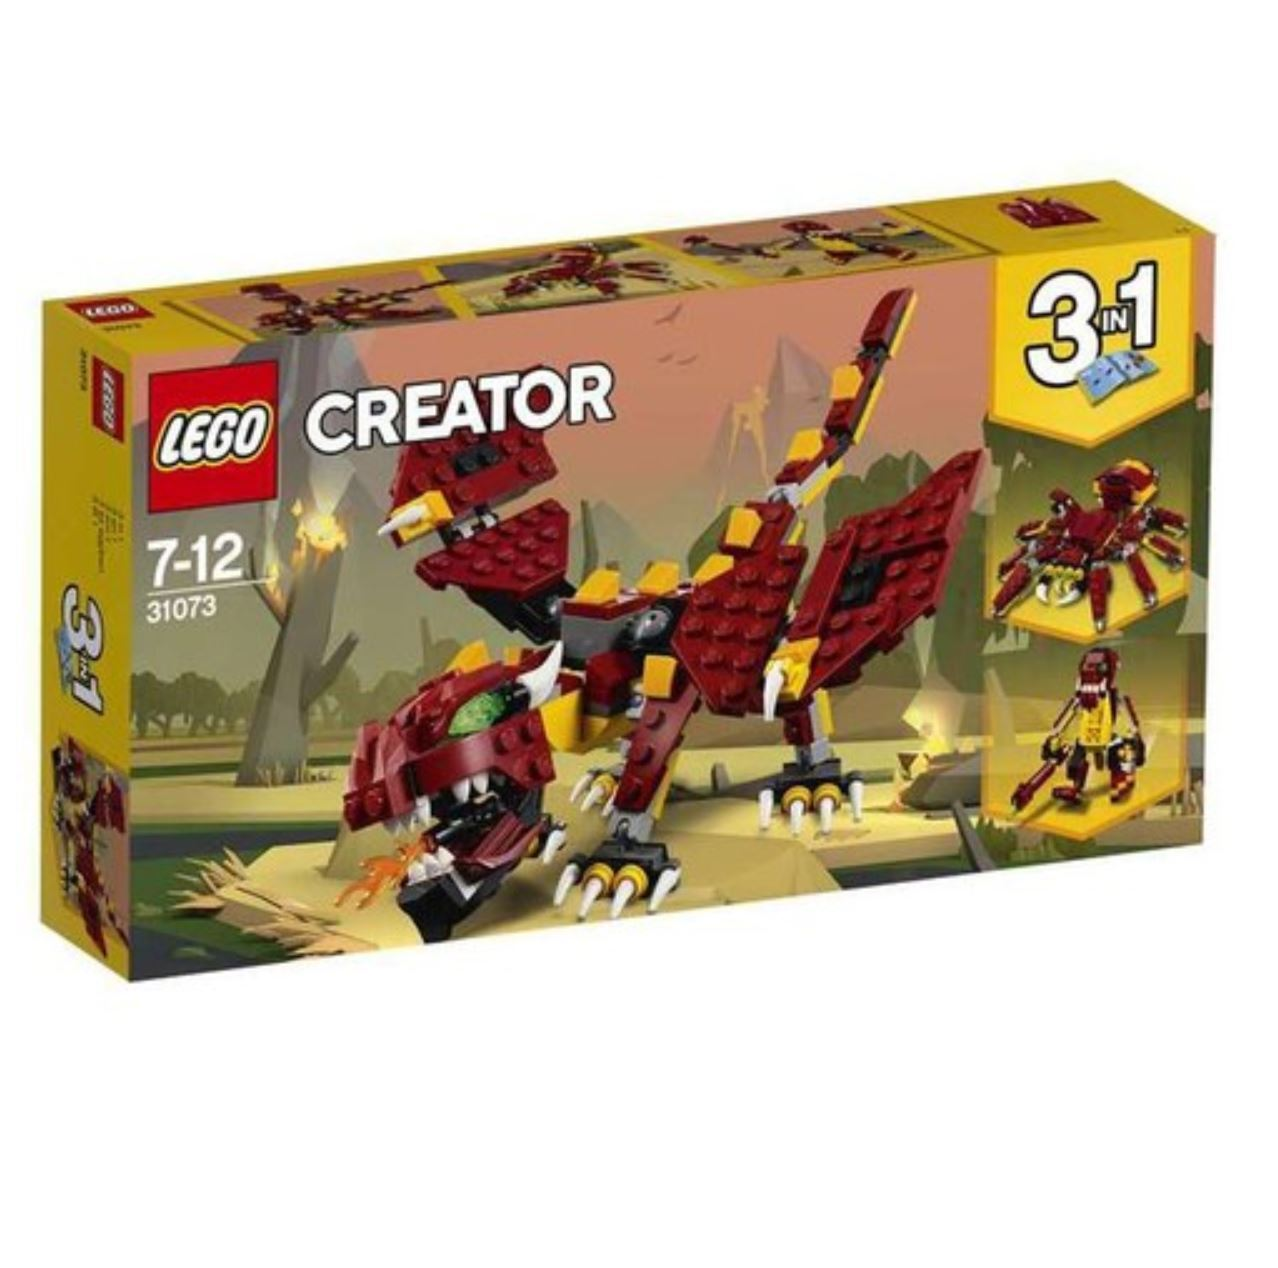 [LEGO] CREATOR Mythical Creatures 31073 2018 Version Free Shipping